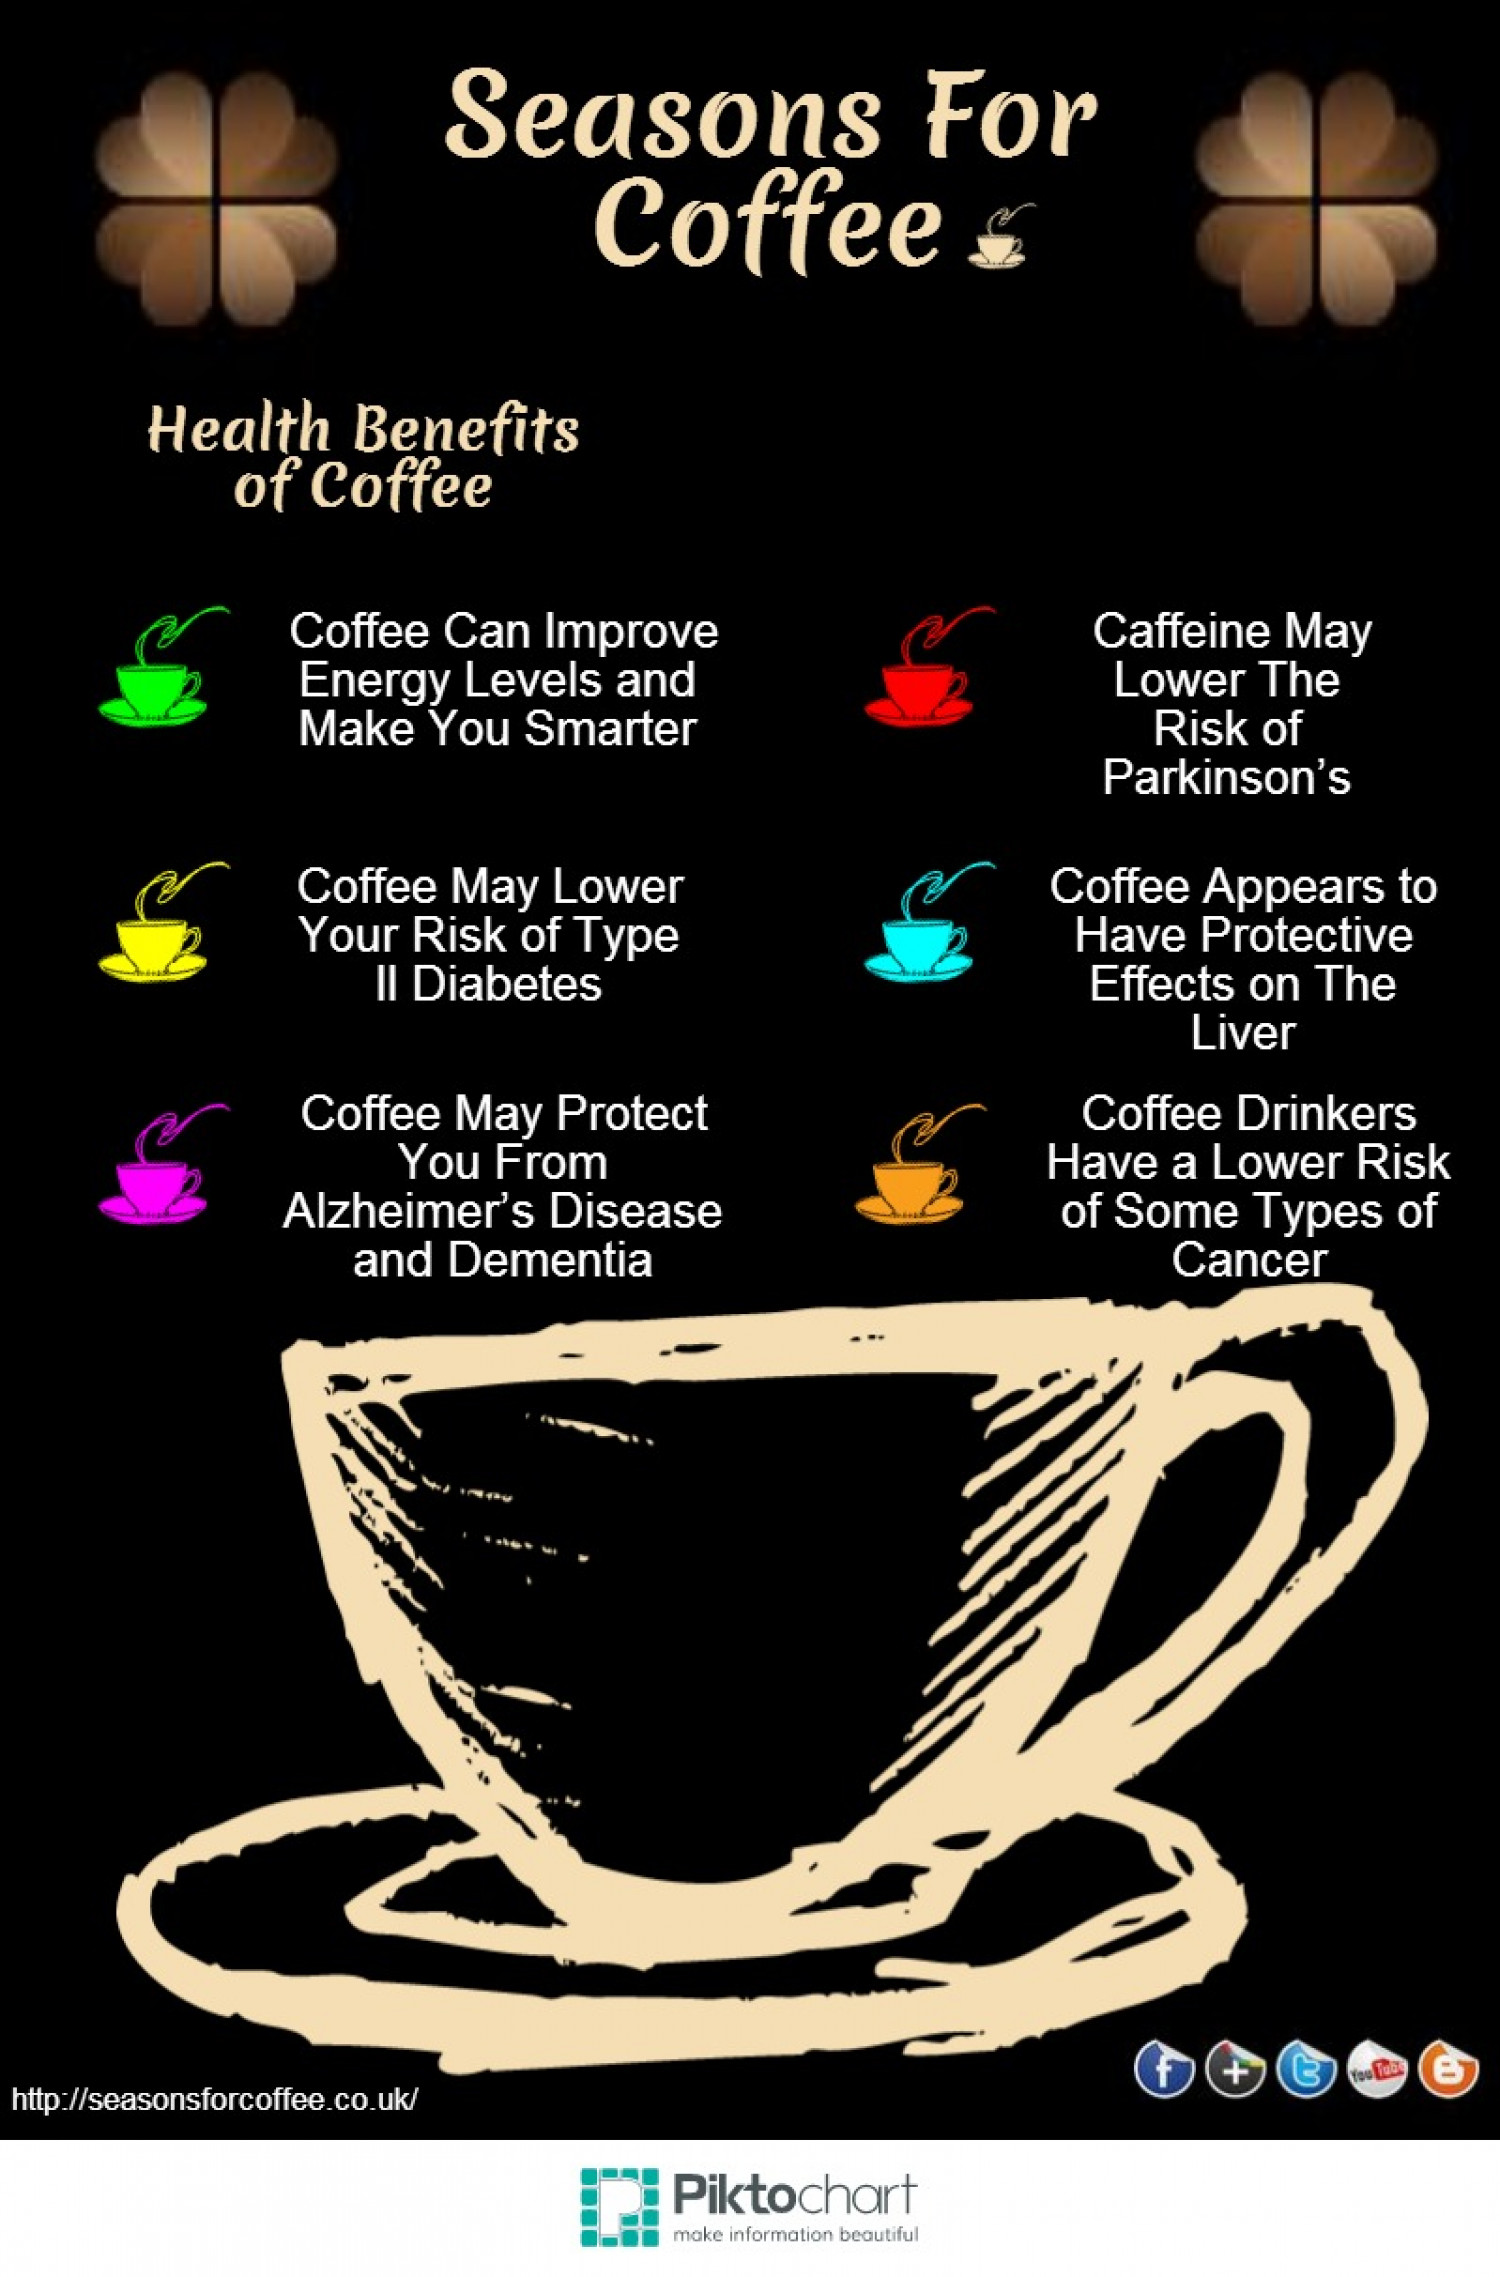 Health Benefits of Coffee Infographic